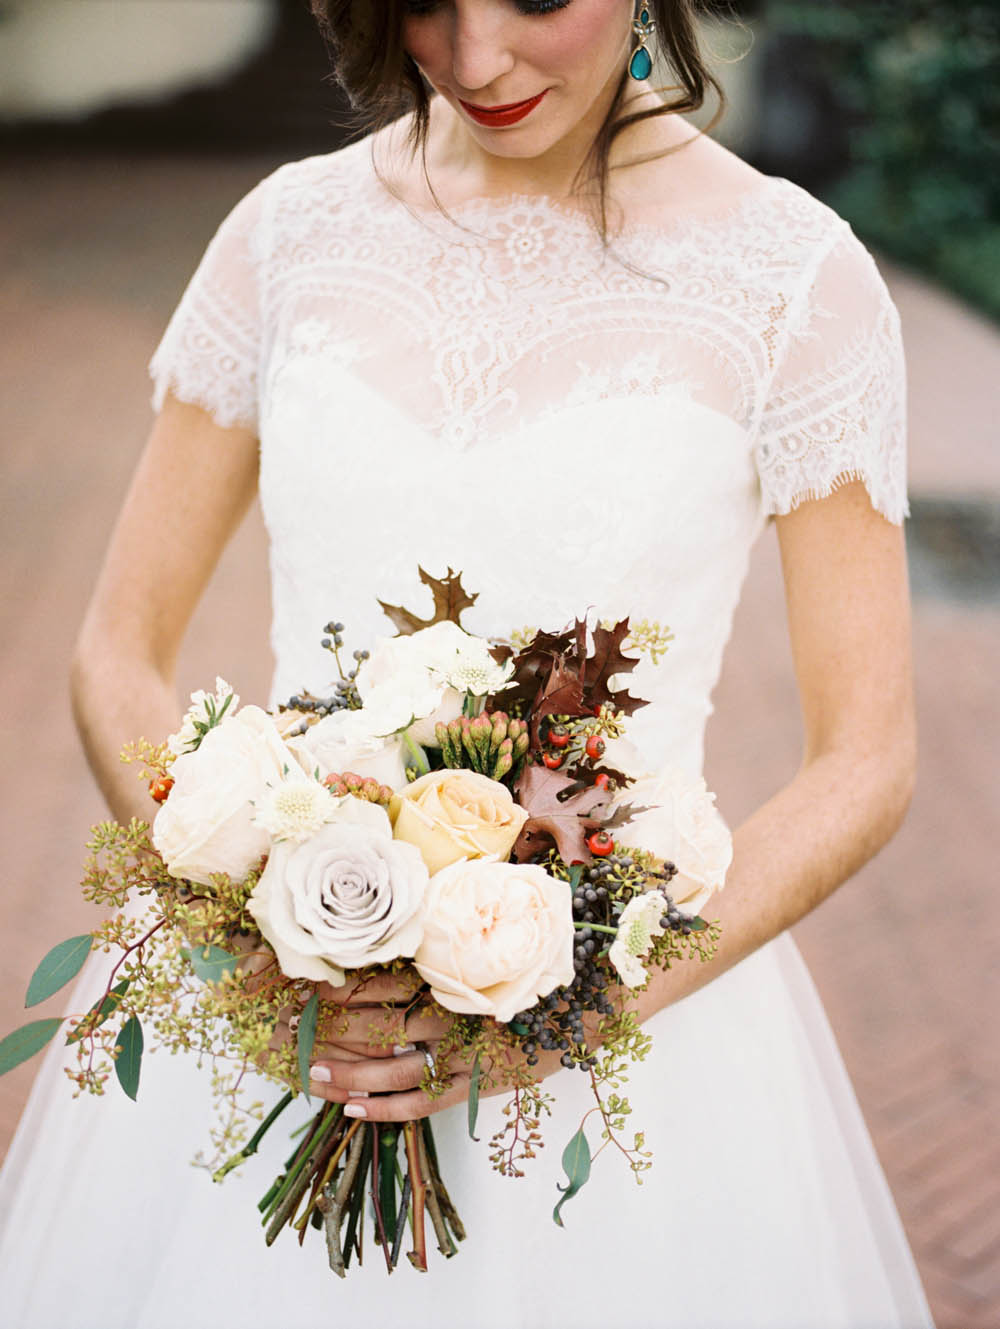 Natural, lush bridal bouquet